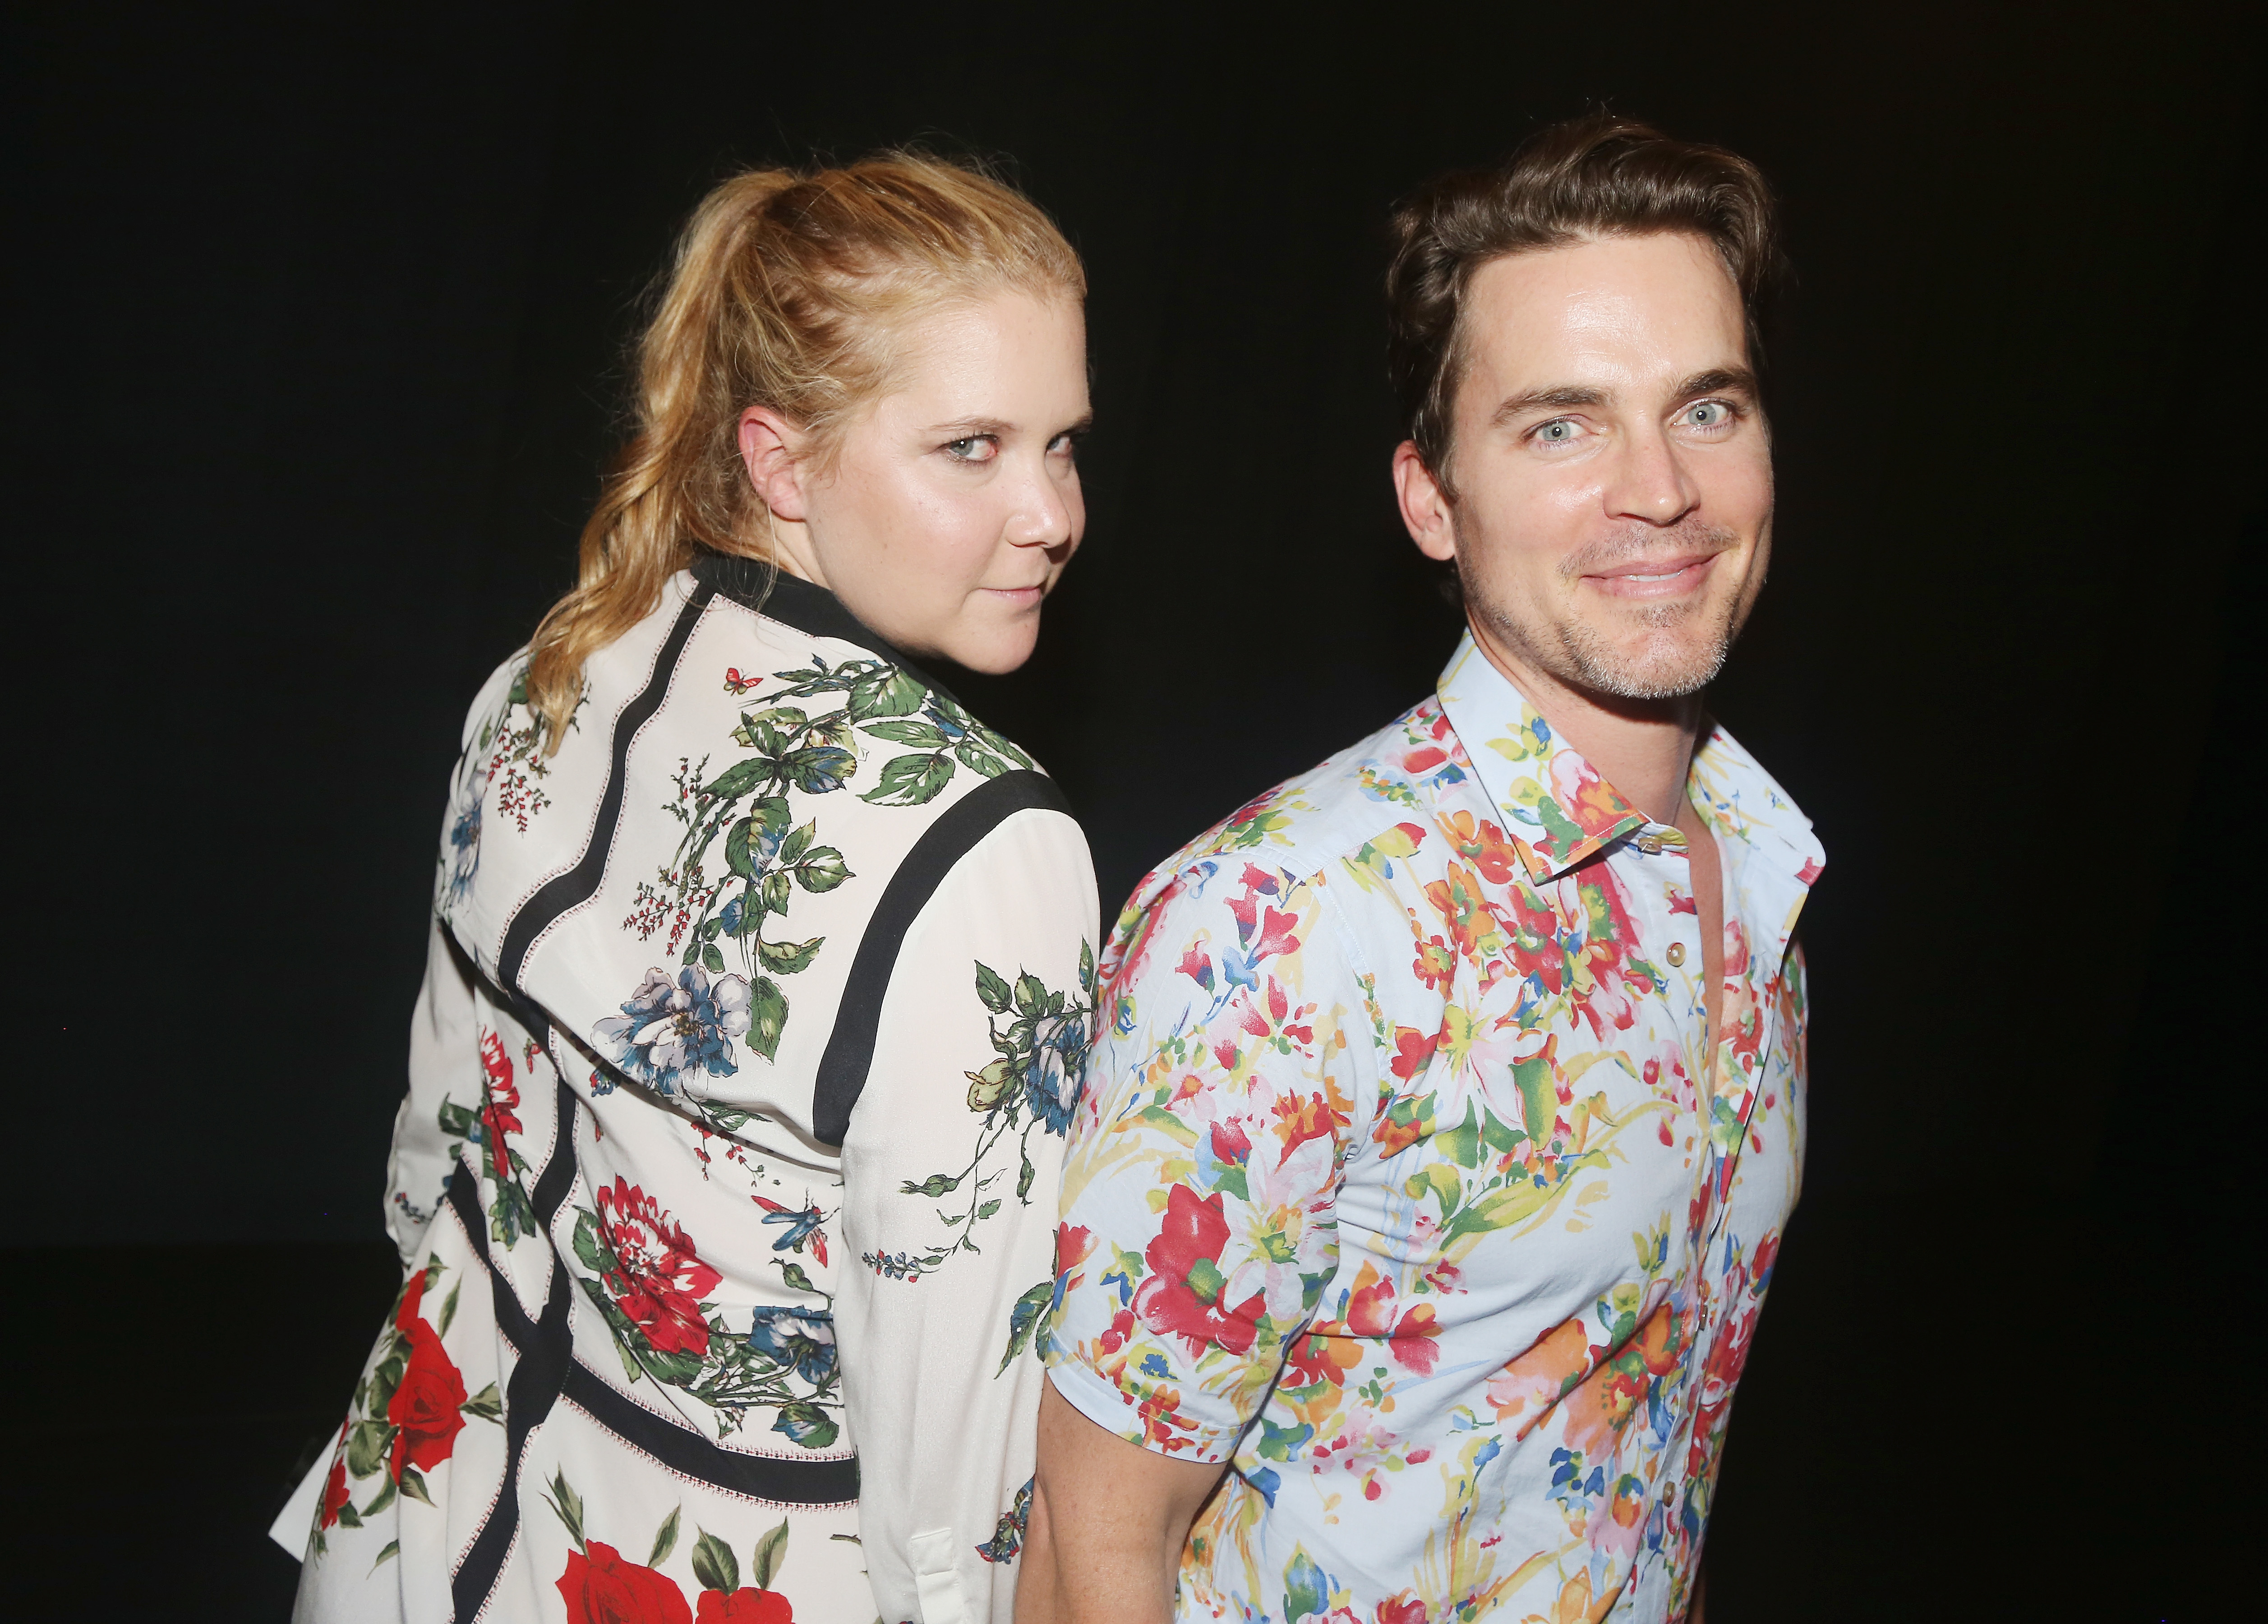 """Amy Schumer and Matt Bomer pose backstage at the hit musical """"Dear Evan Hansen"""" in New York City on July 22, 2017."""